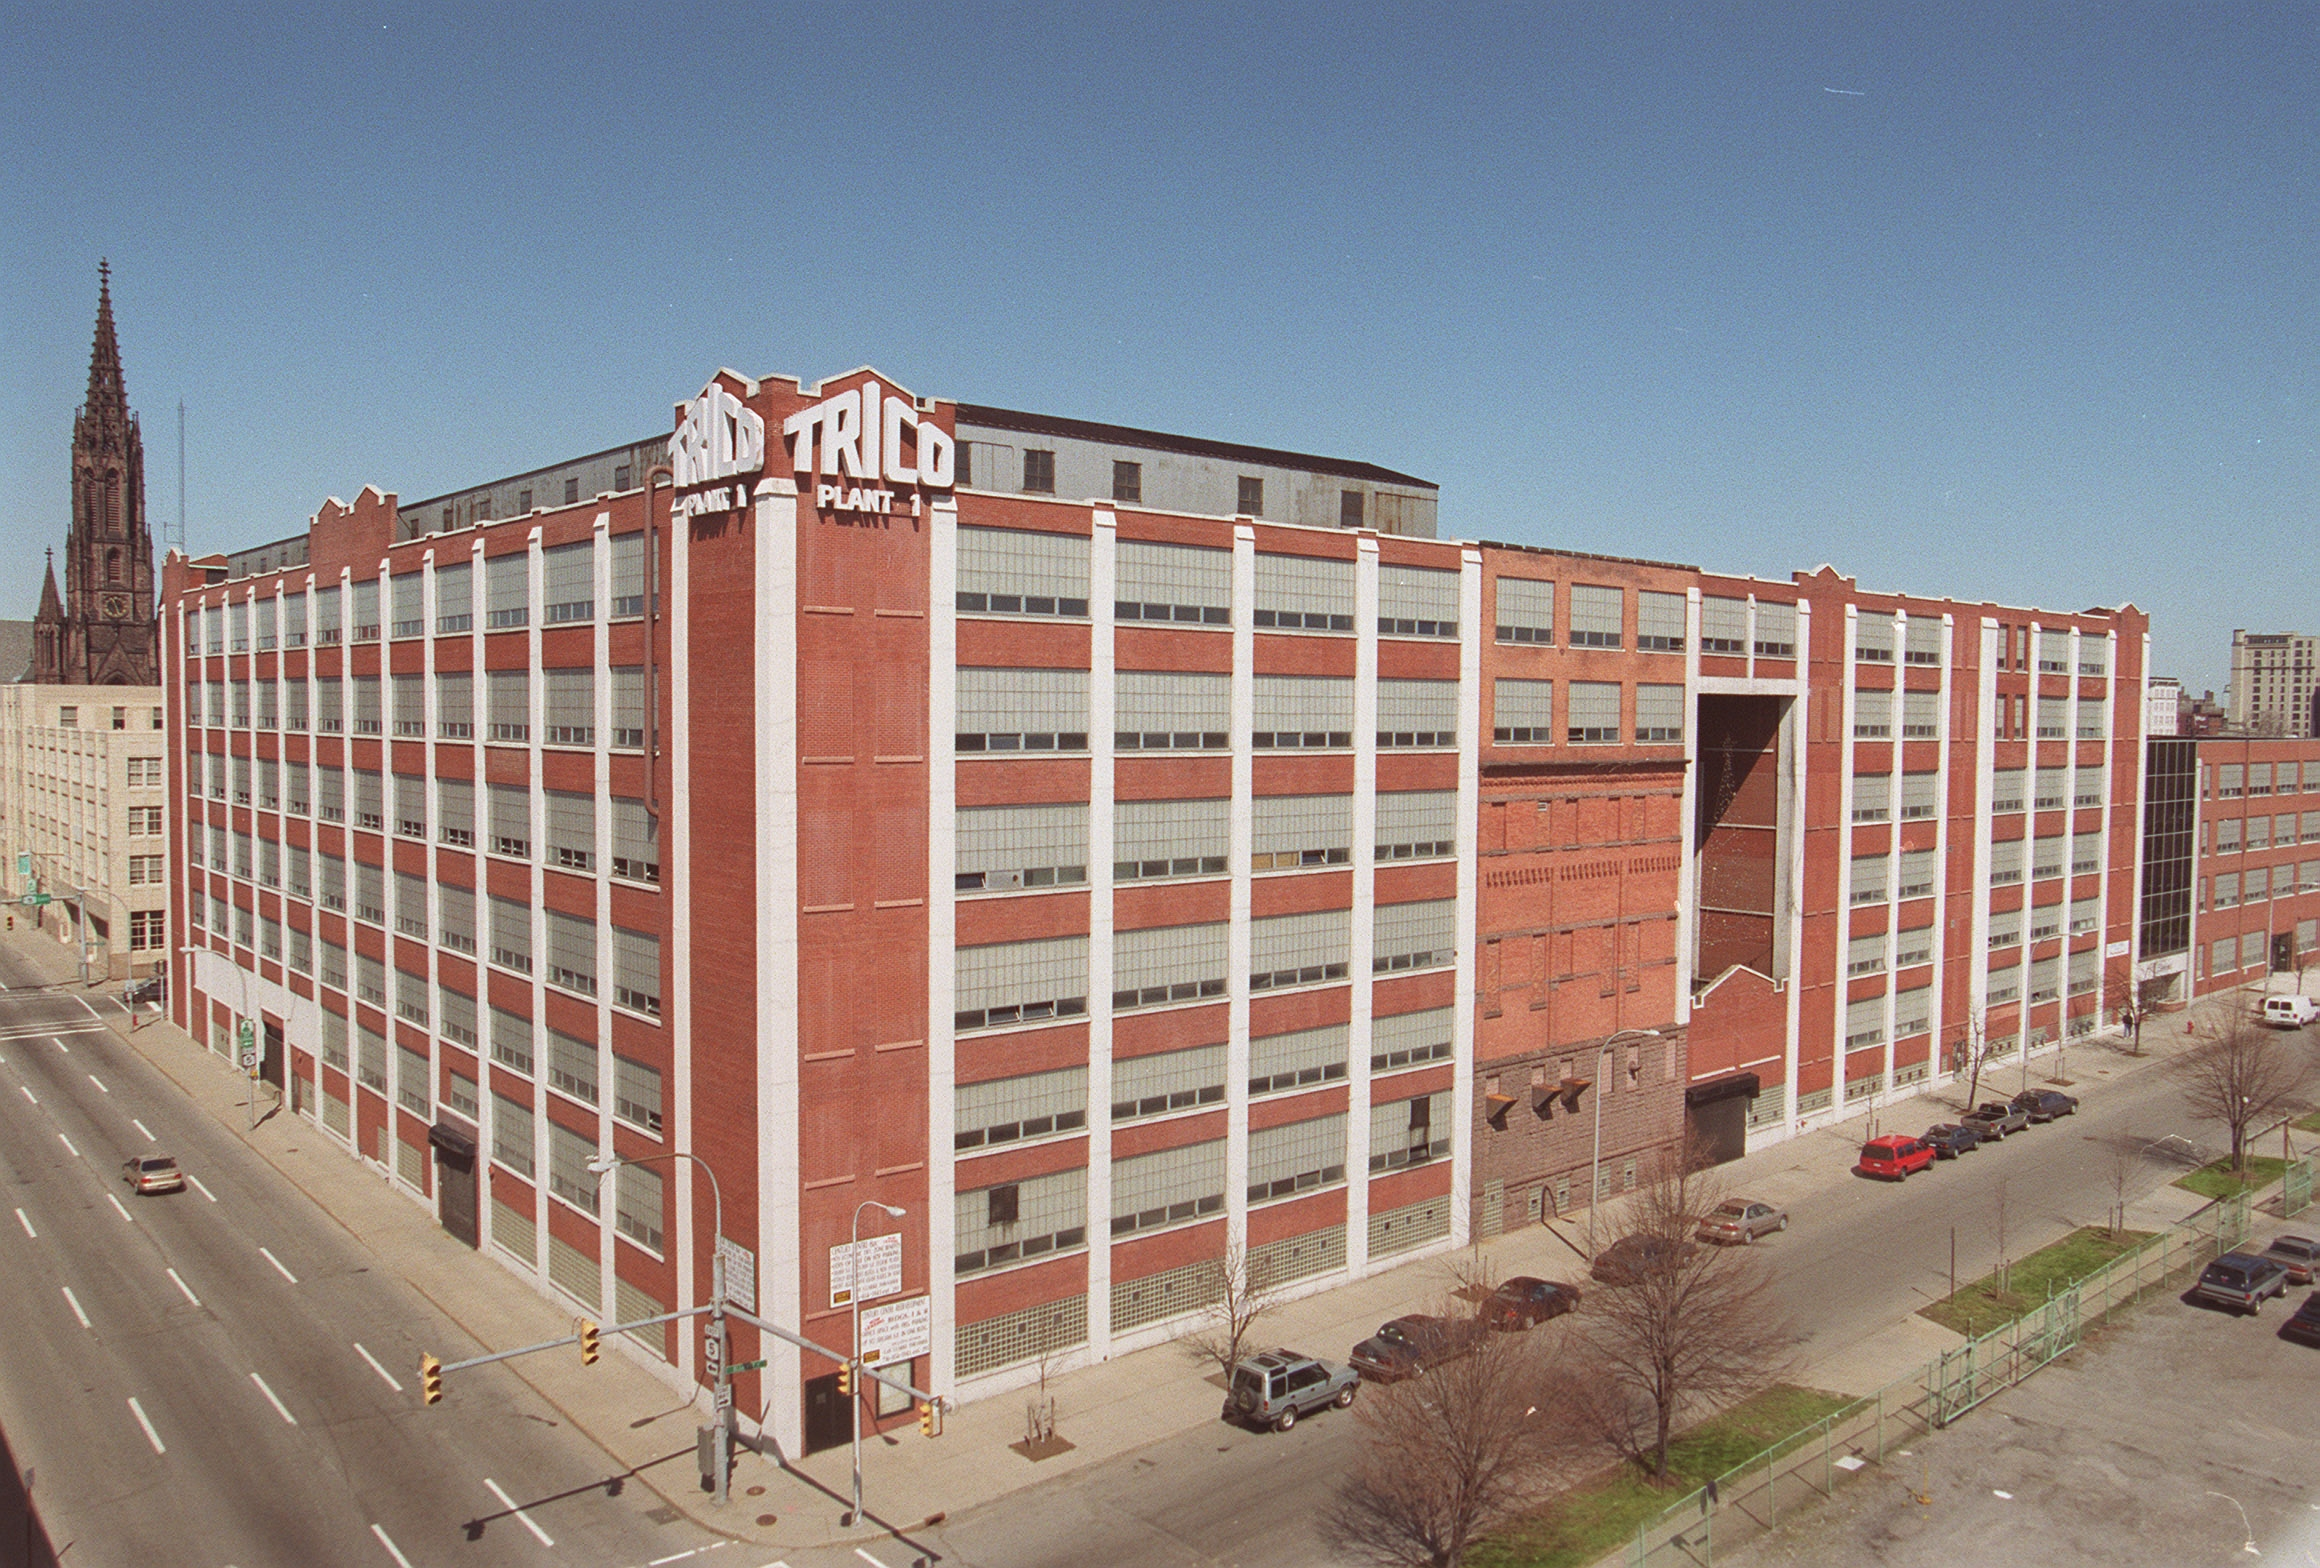 Under Krog Corp.'s plan, the former Trico Products Corp. warehouse on Goodell Street would become a mixed-use facility featuring hotel rooms, apartments and office space.